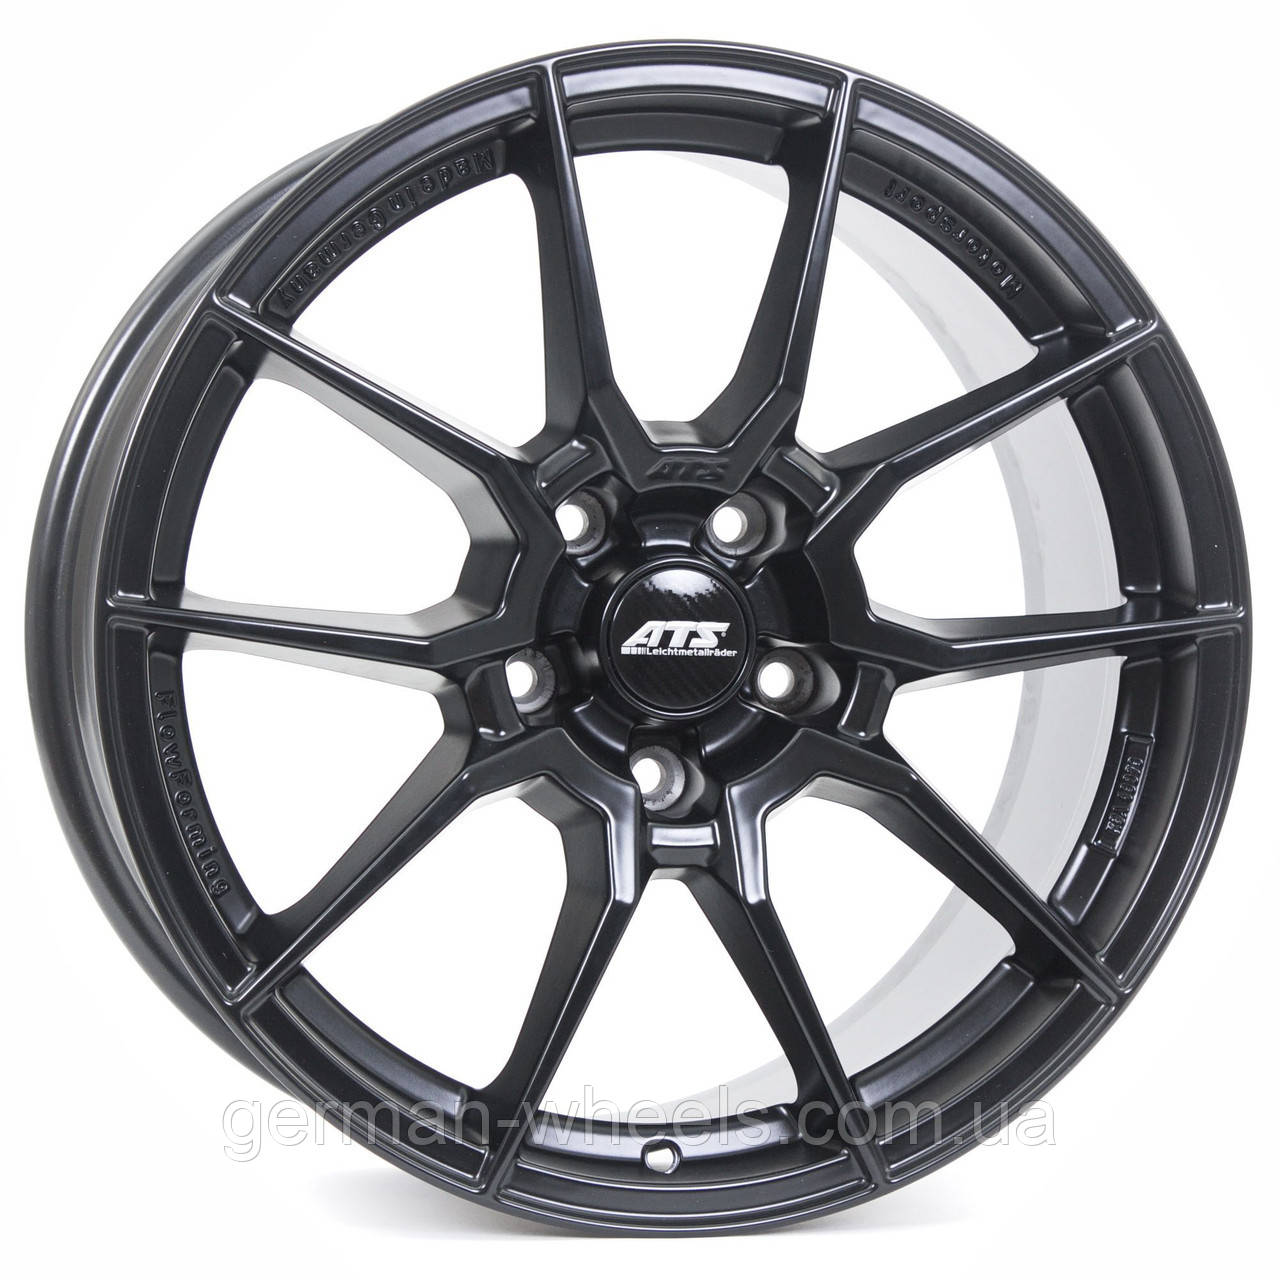 "Диски ATS (АТС) модель RACELIGHT цвет Racing-black параметры 10.0J x 19"" 5 x 130 ET 52"